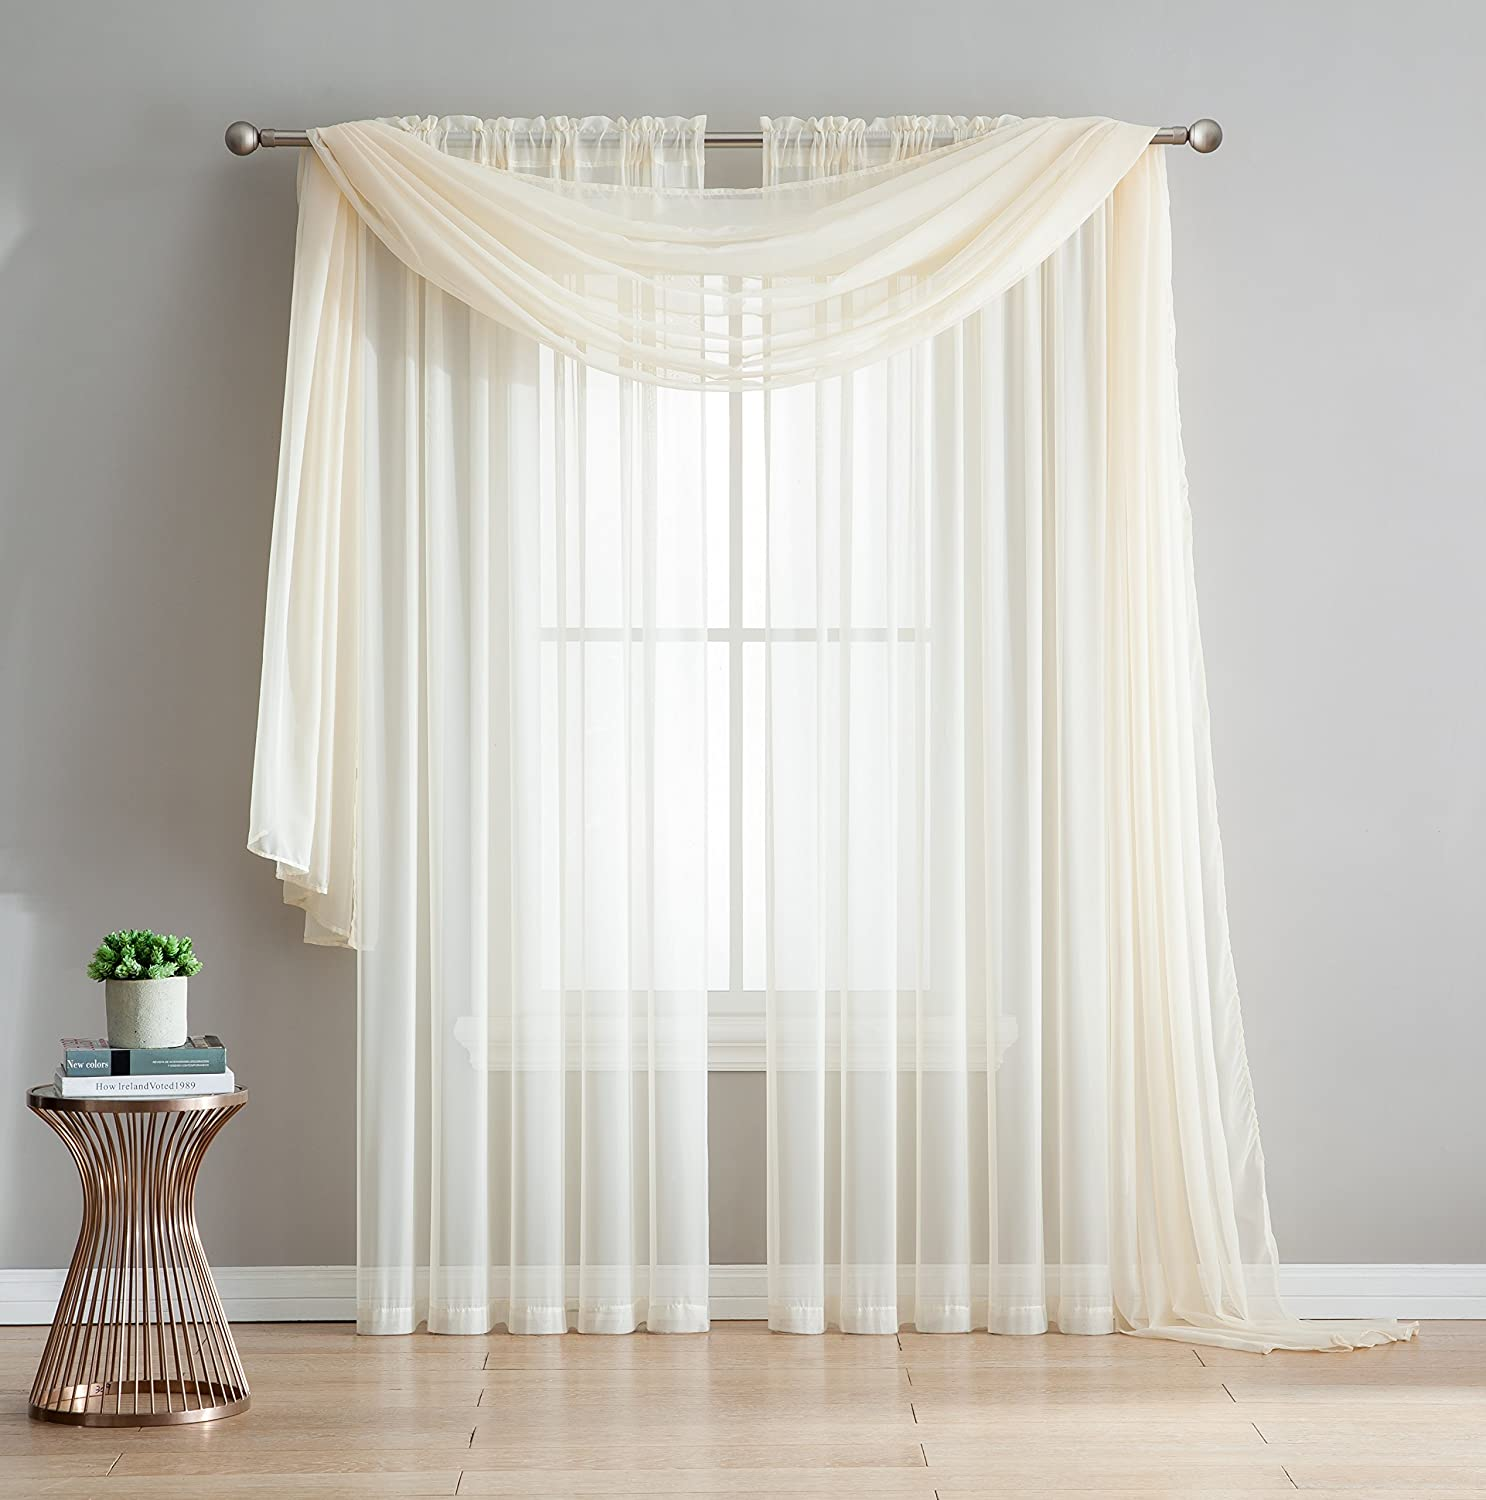 Voile Curtains for Window Treatment - Natural Light Flow Beige